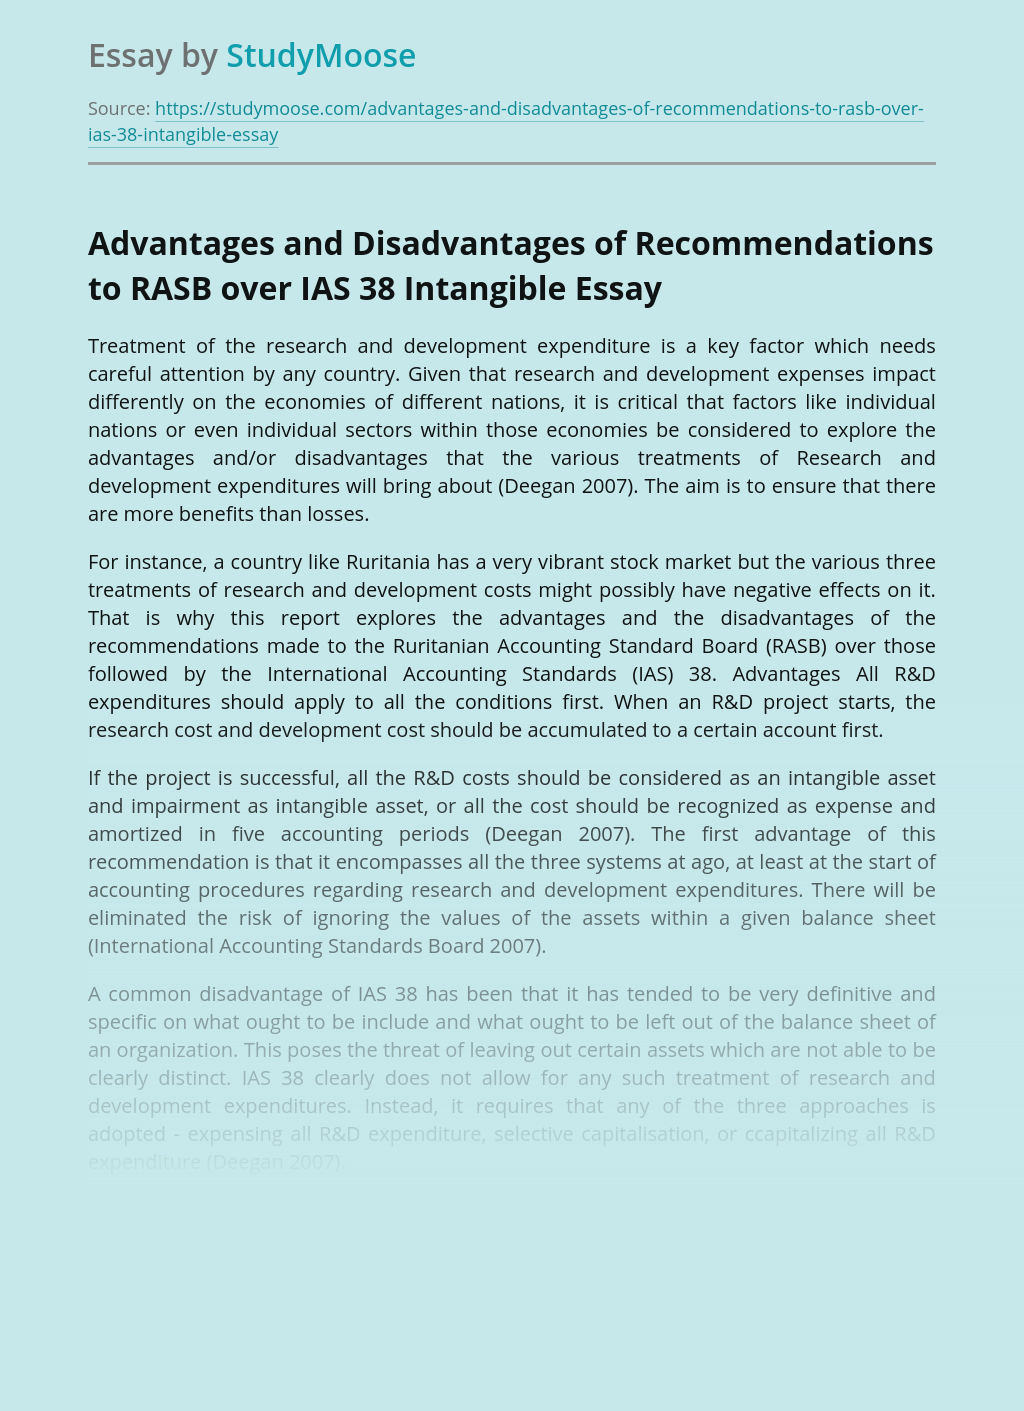 Advantages and Disadvantages of Recommendations to RASB over IAS 38 Intangible